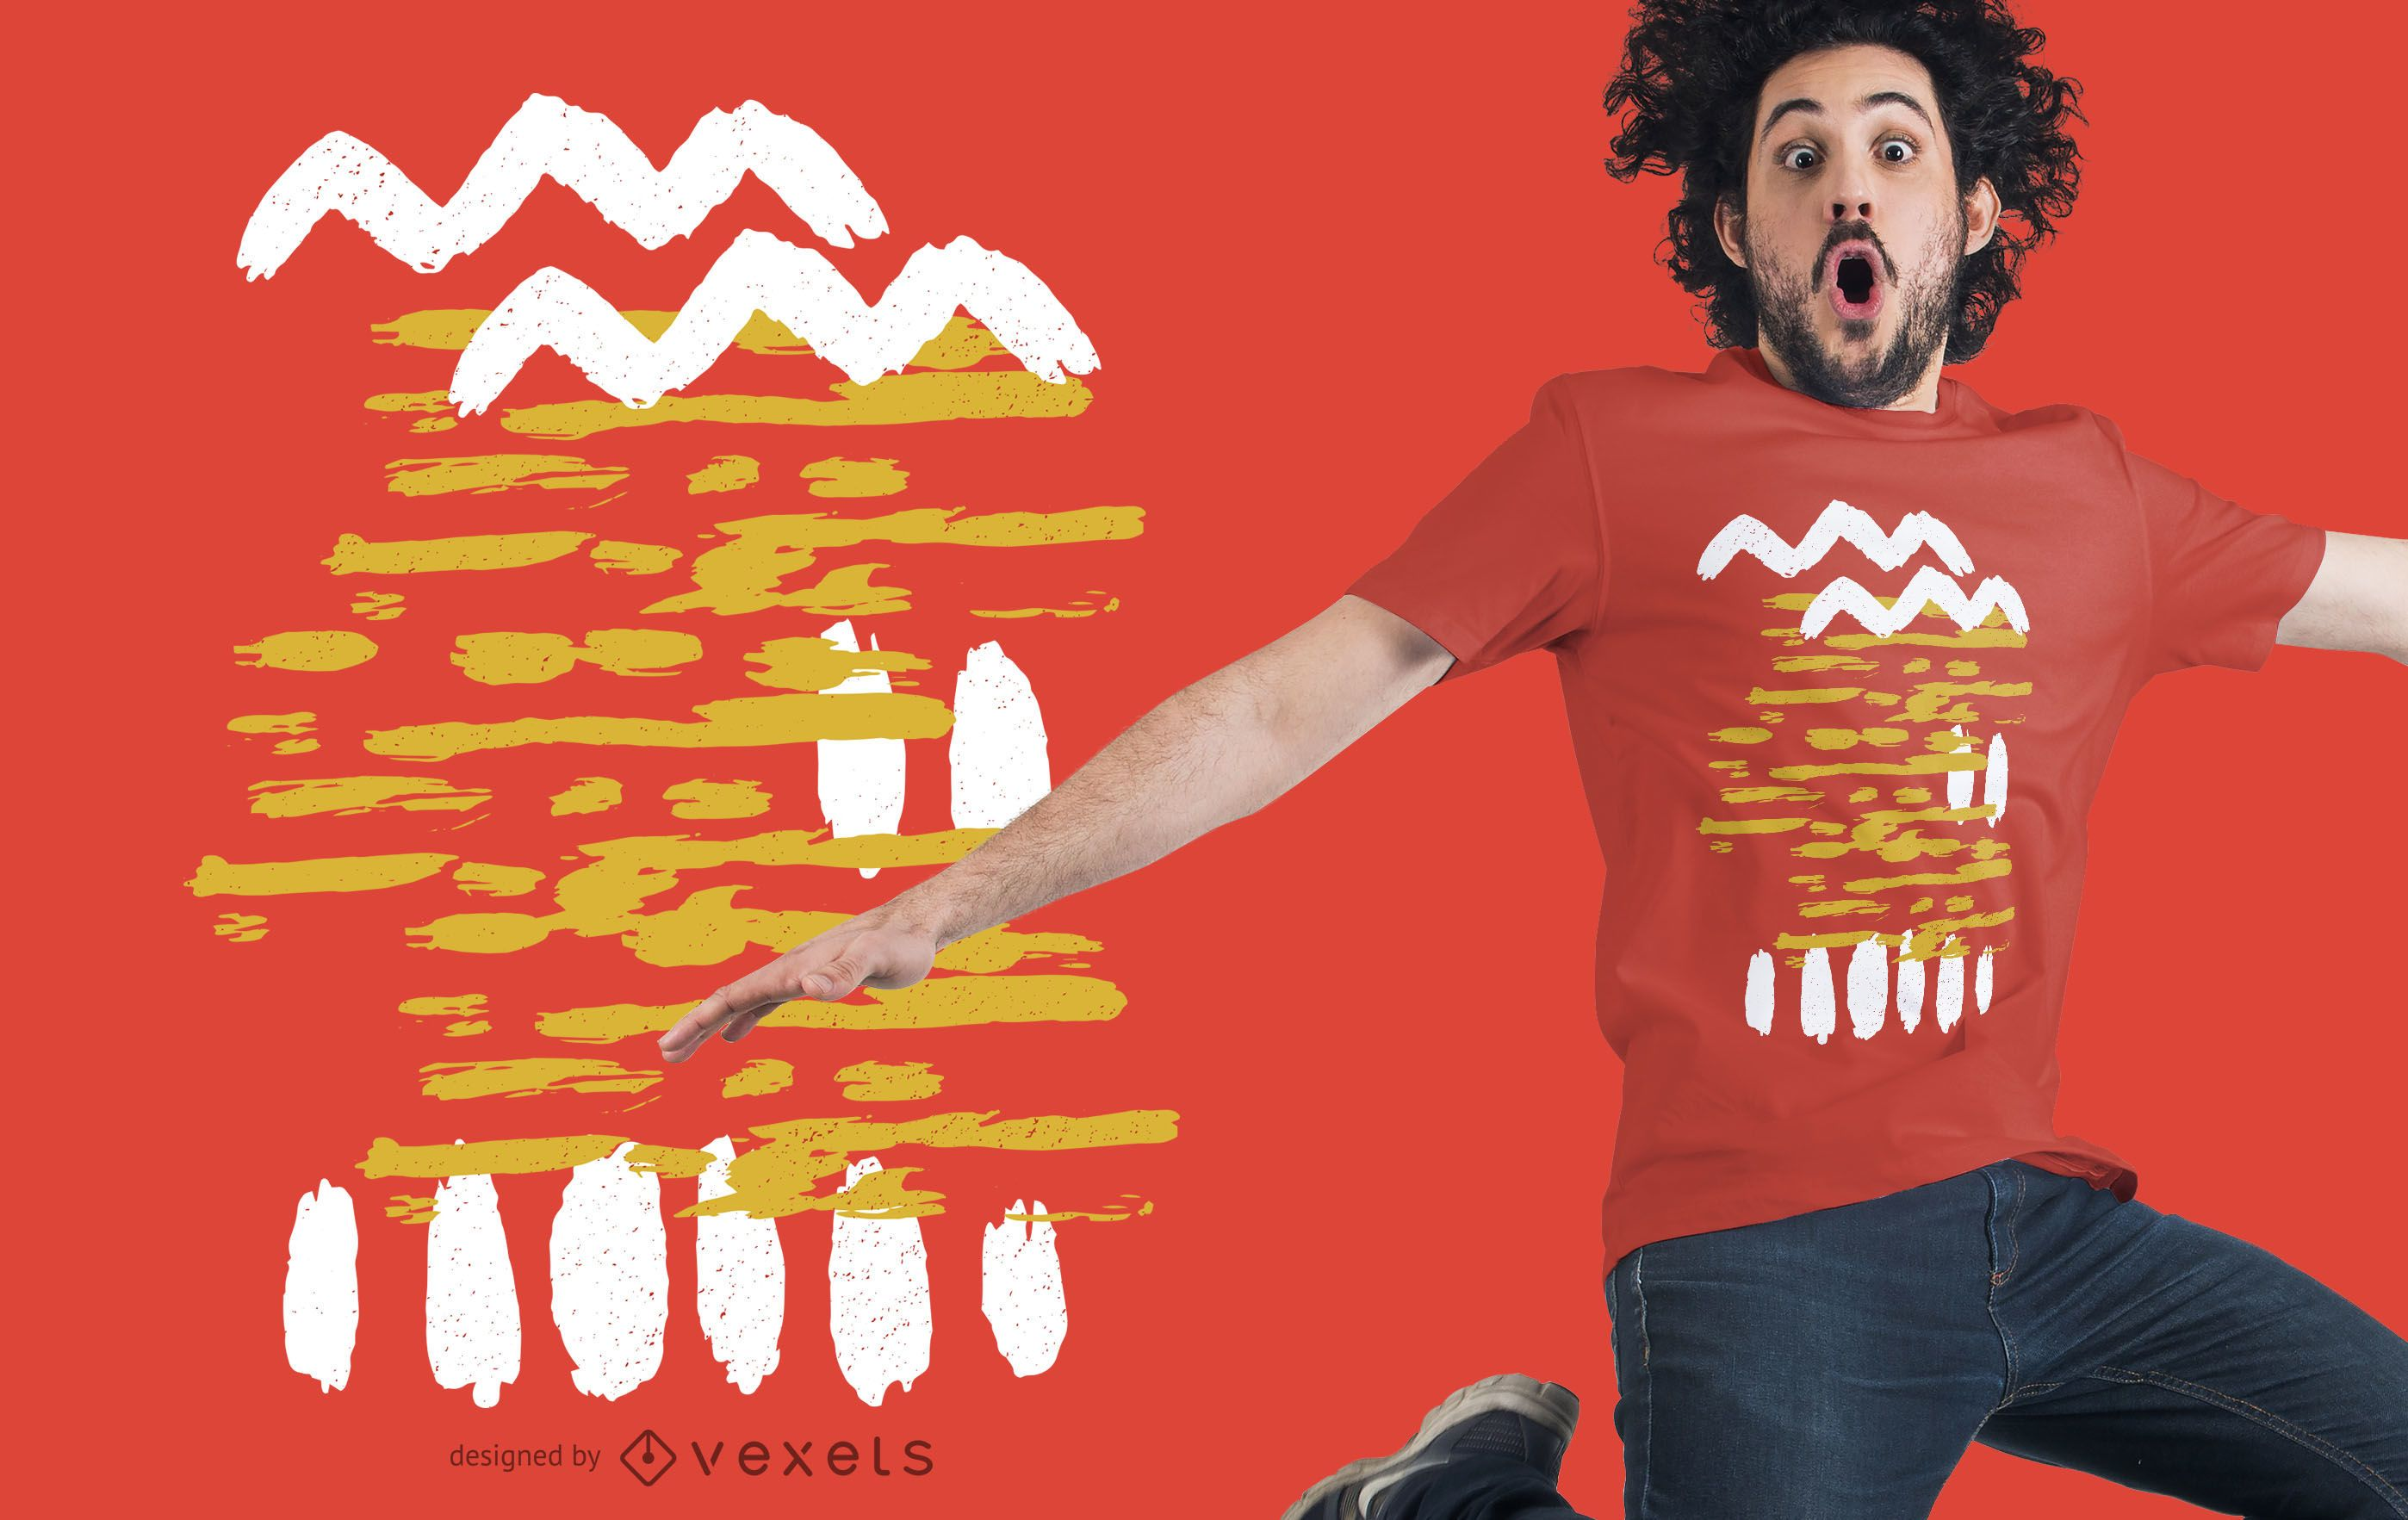 Abstract yellow white t-shirt design